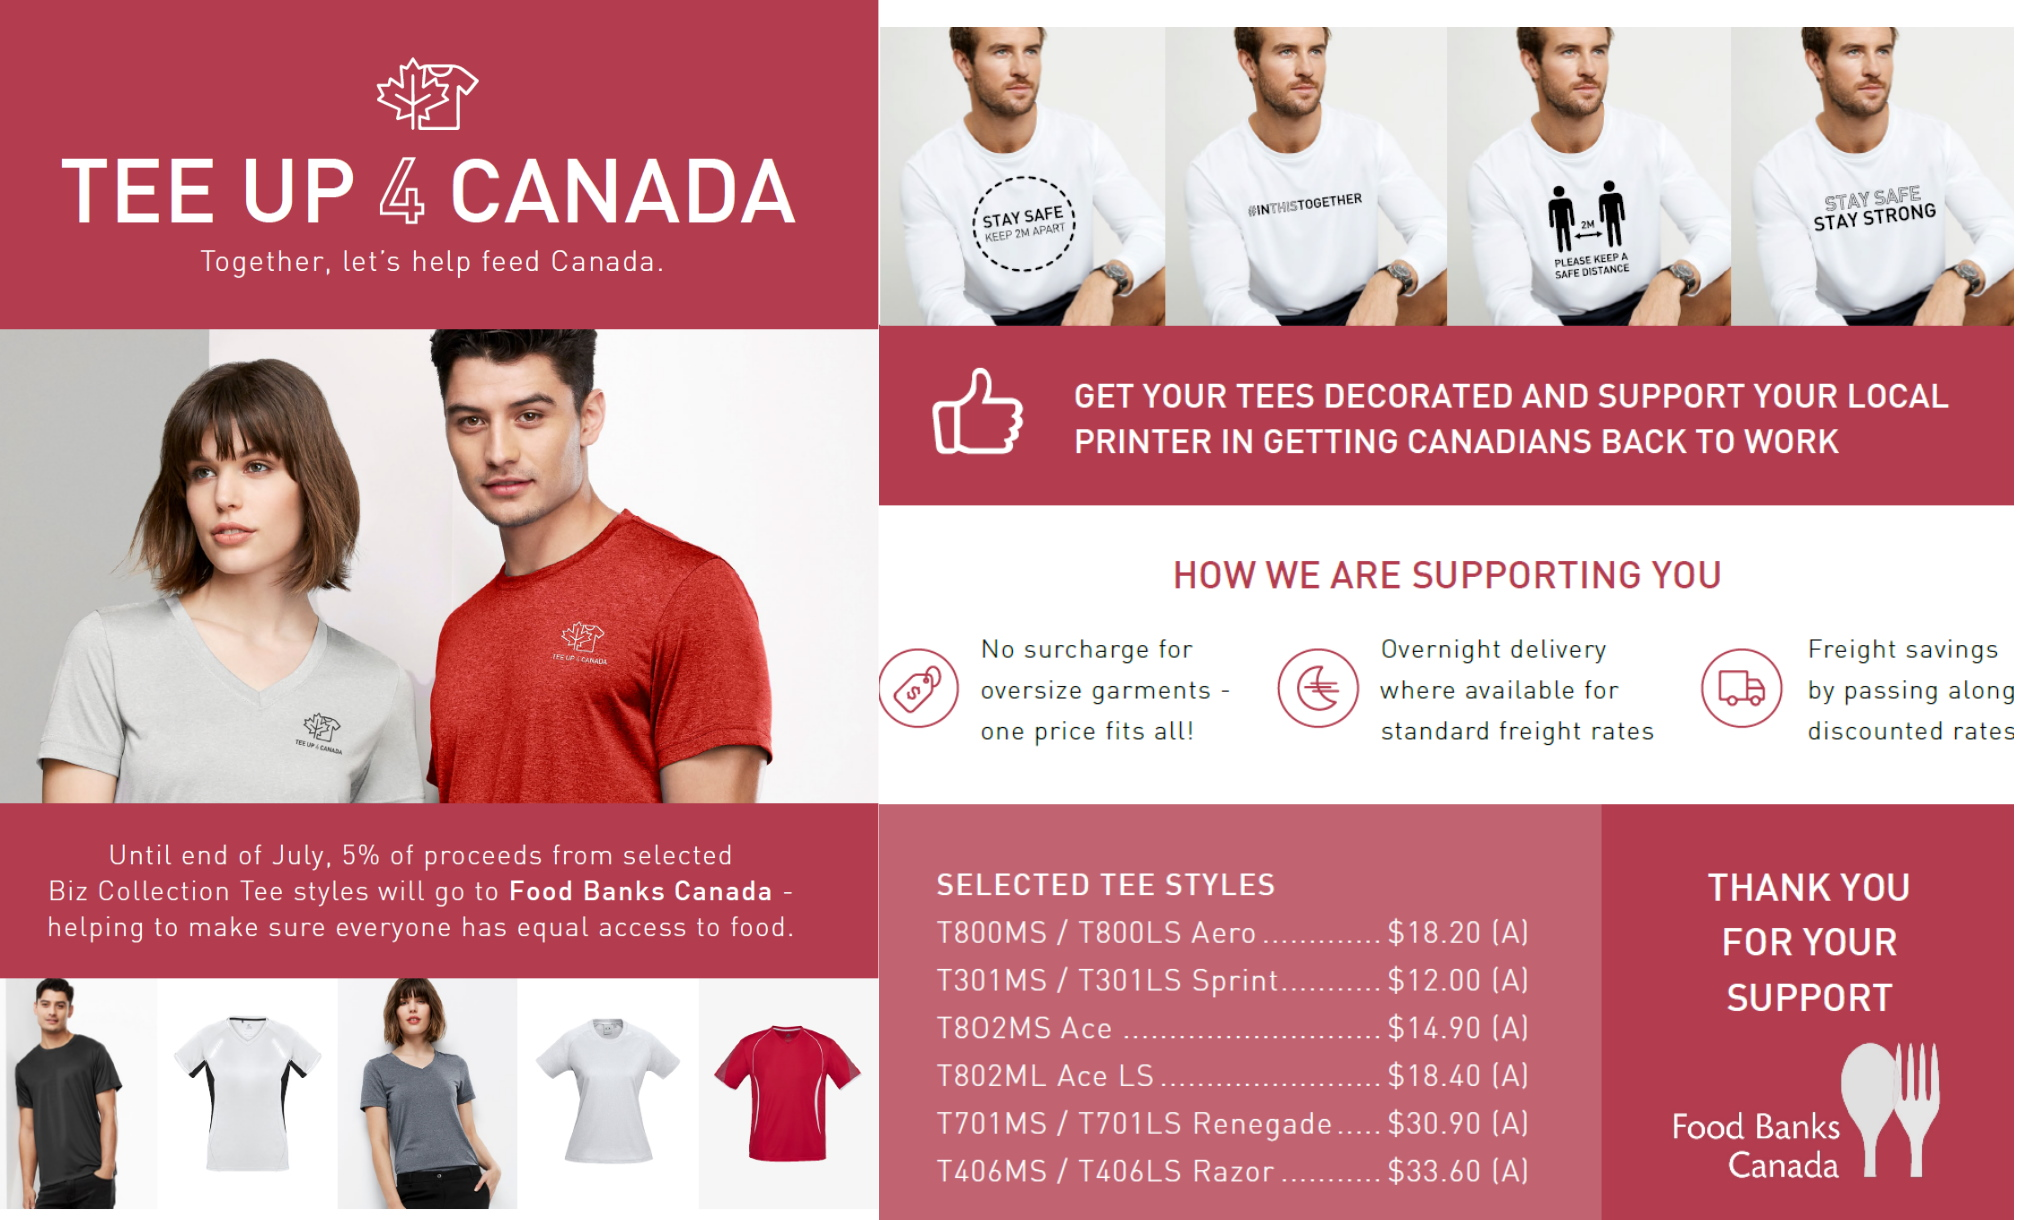 TEE up 4 Canada food banks shirt